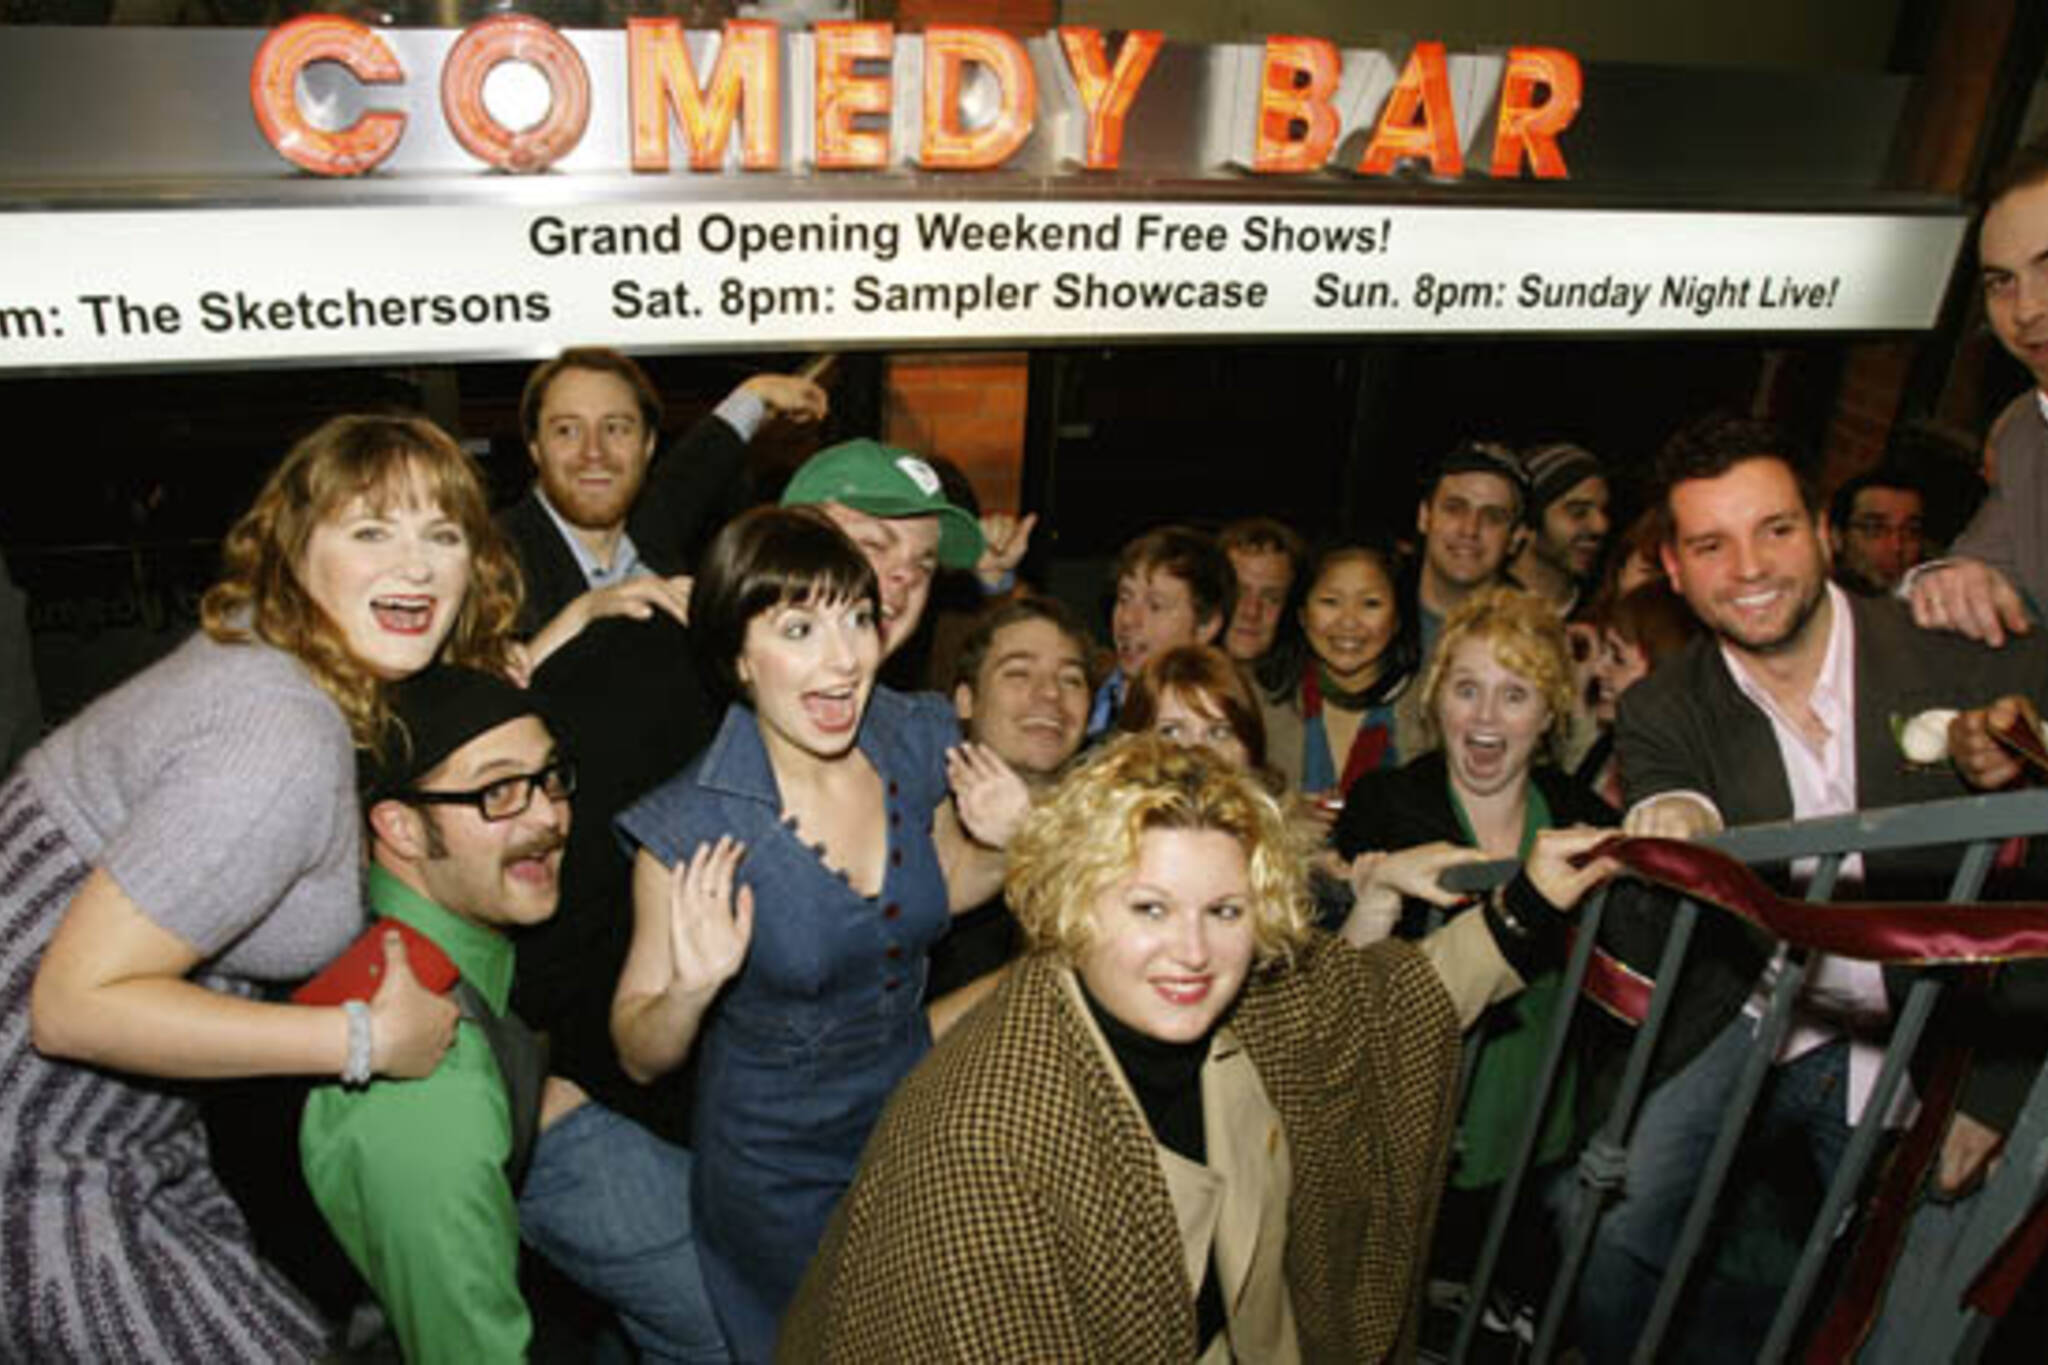 The Comedy Bar's Grand Opening in Toronto